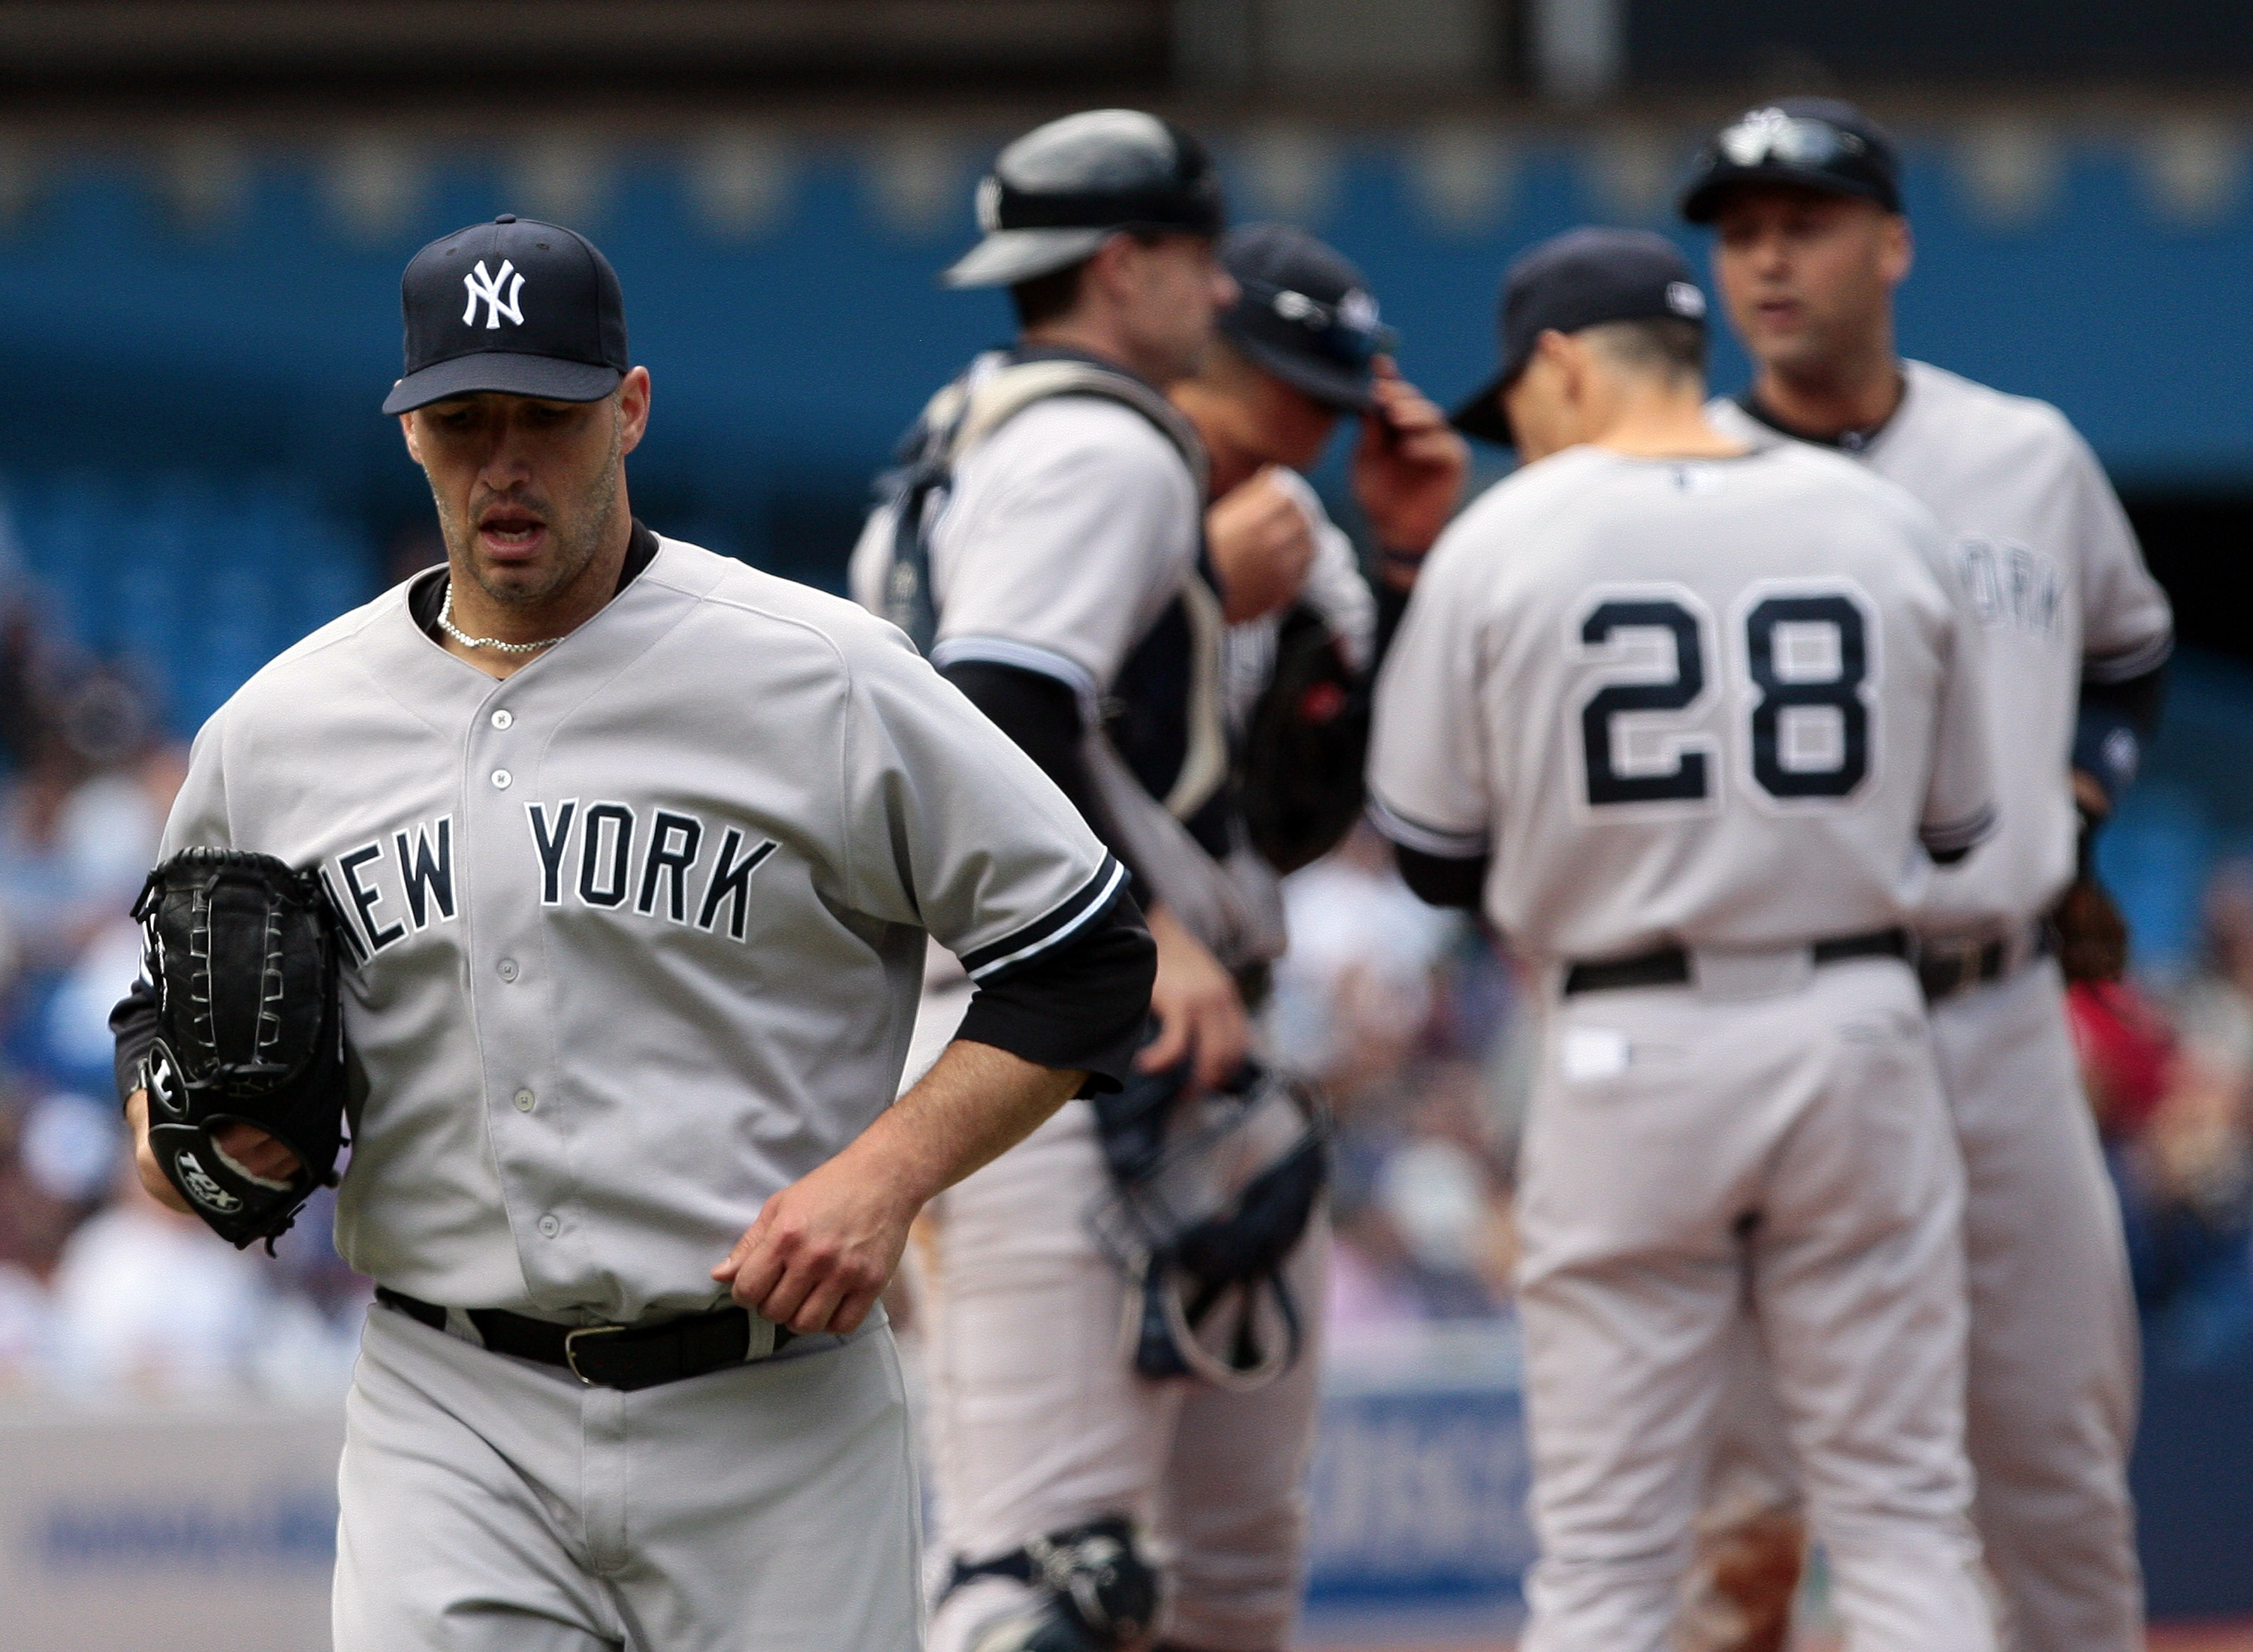 Andy Pettitte couldn't hold a 2-0 lead.